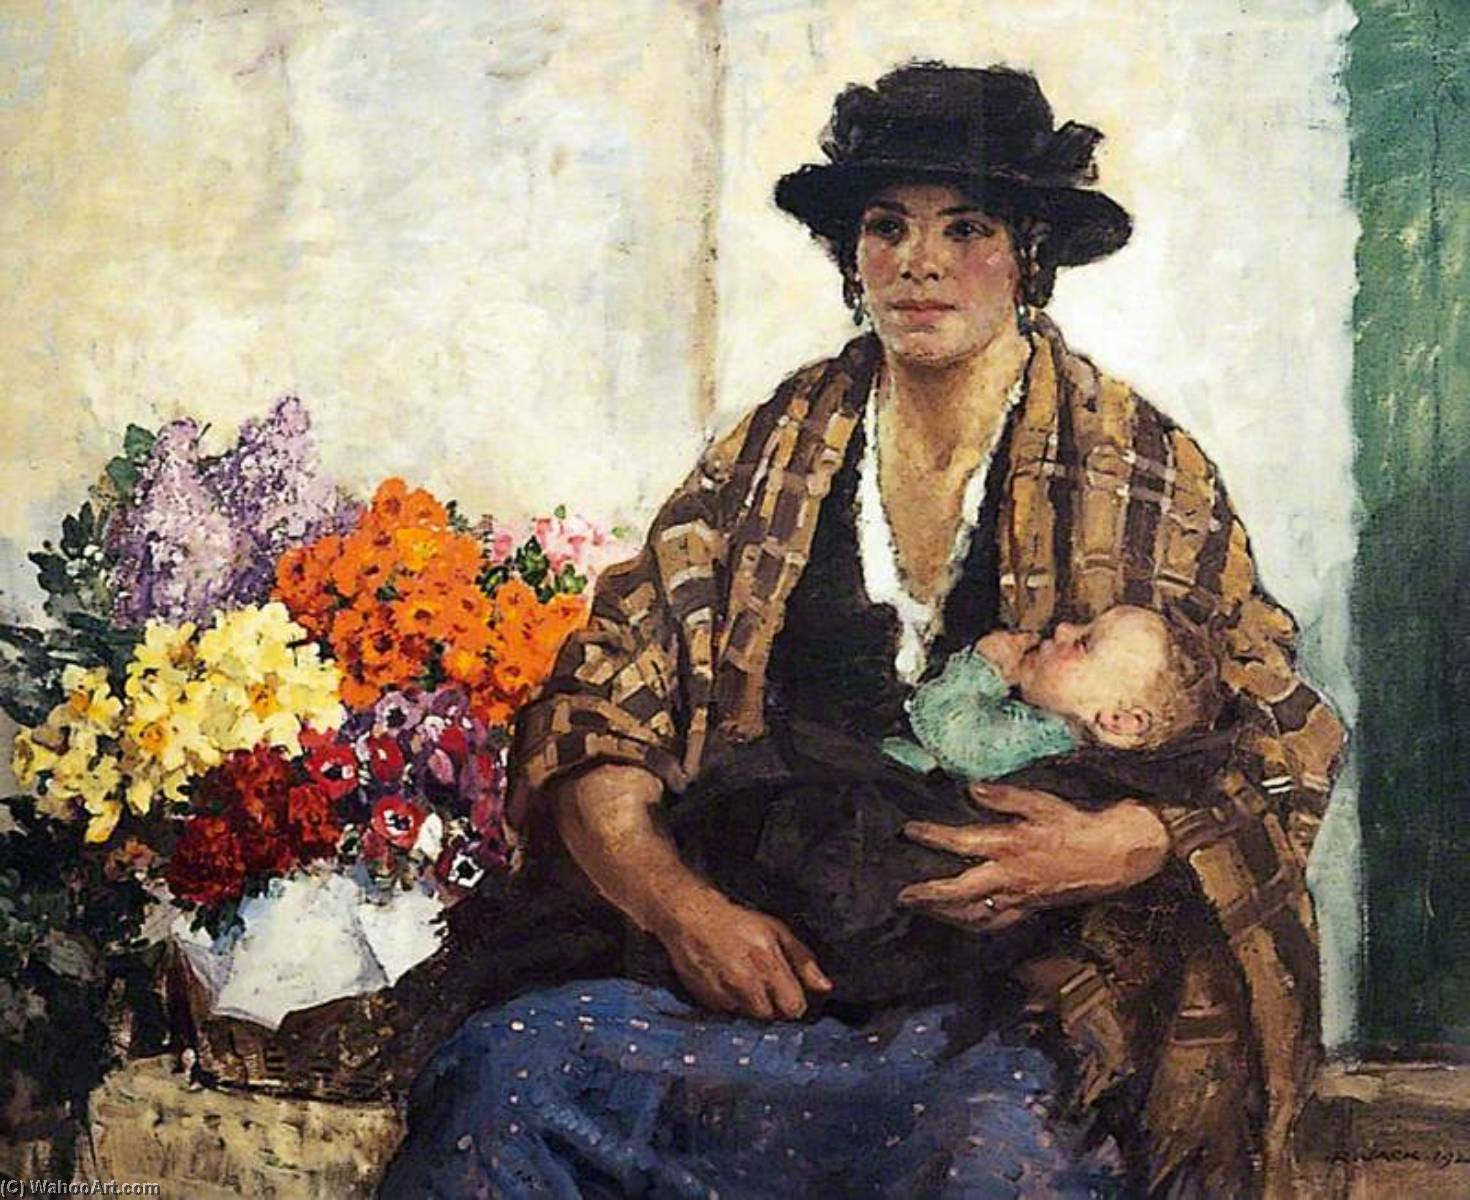 The Flower Seller, Oil On Canvas by Richard Jack (1866-1952, United Kingdom)